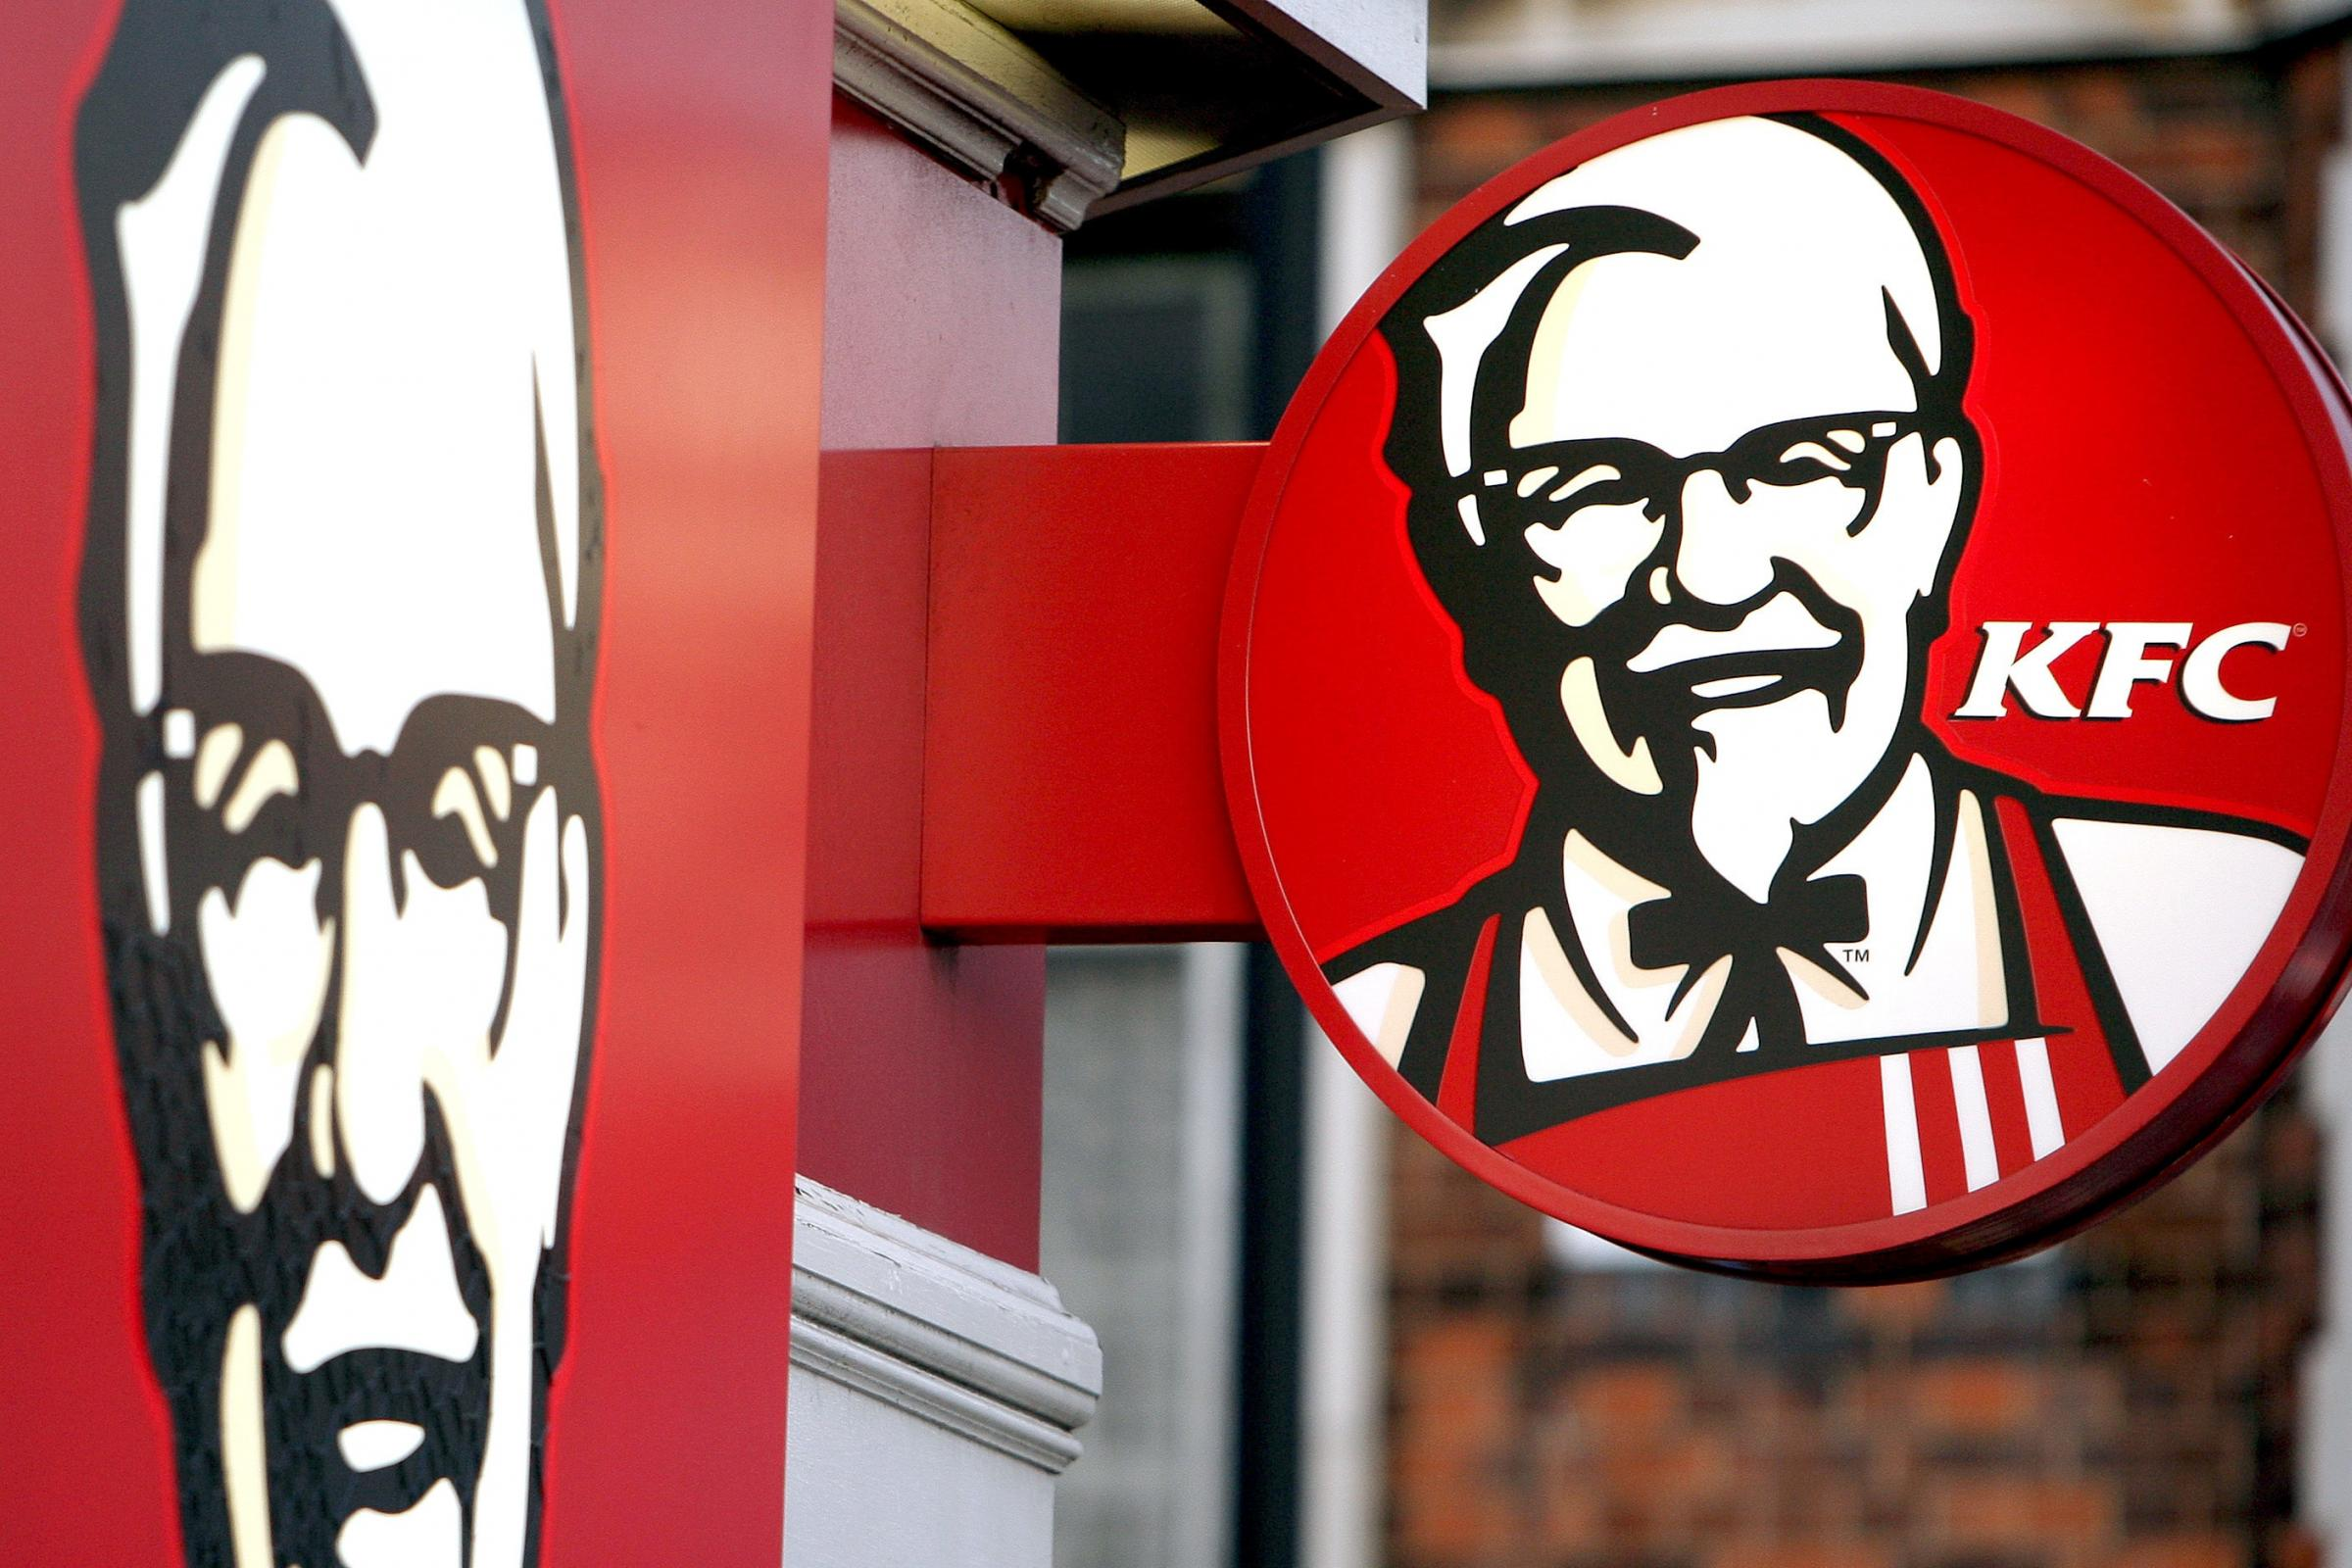 COMING SOON?: New KFC store planned to open in Ilminster